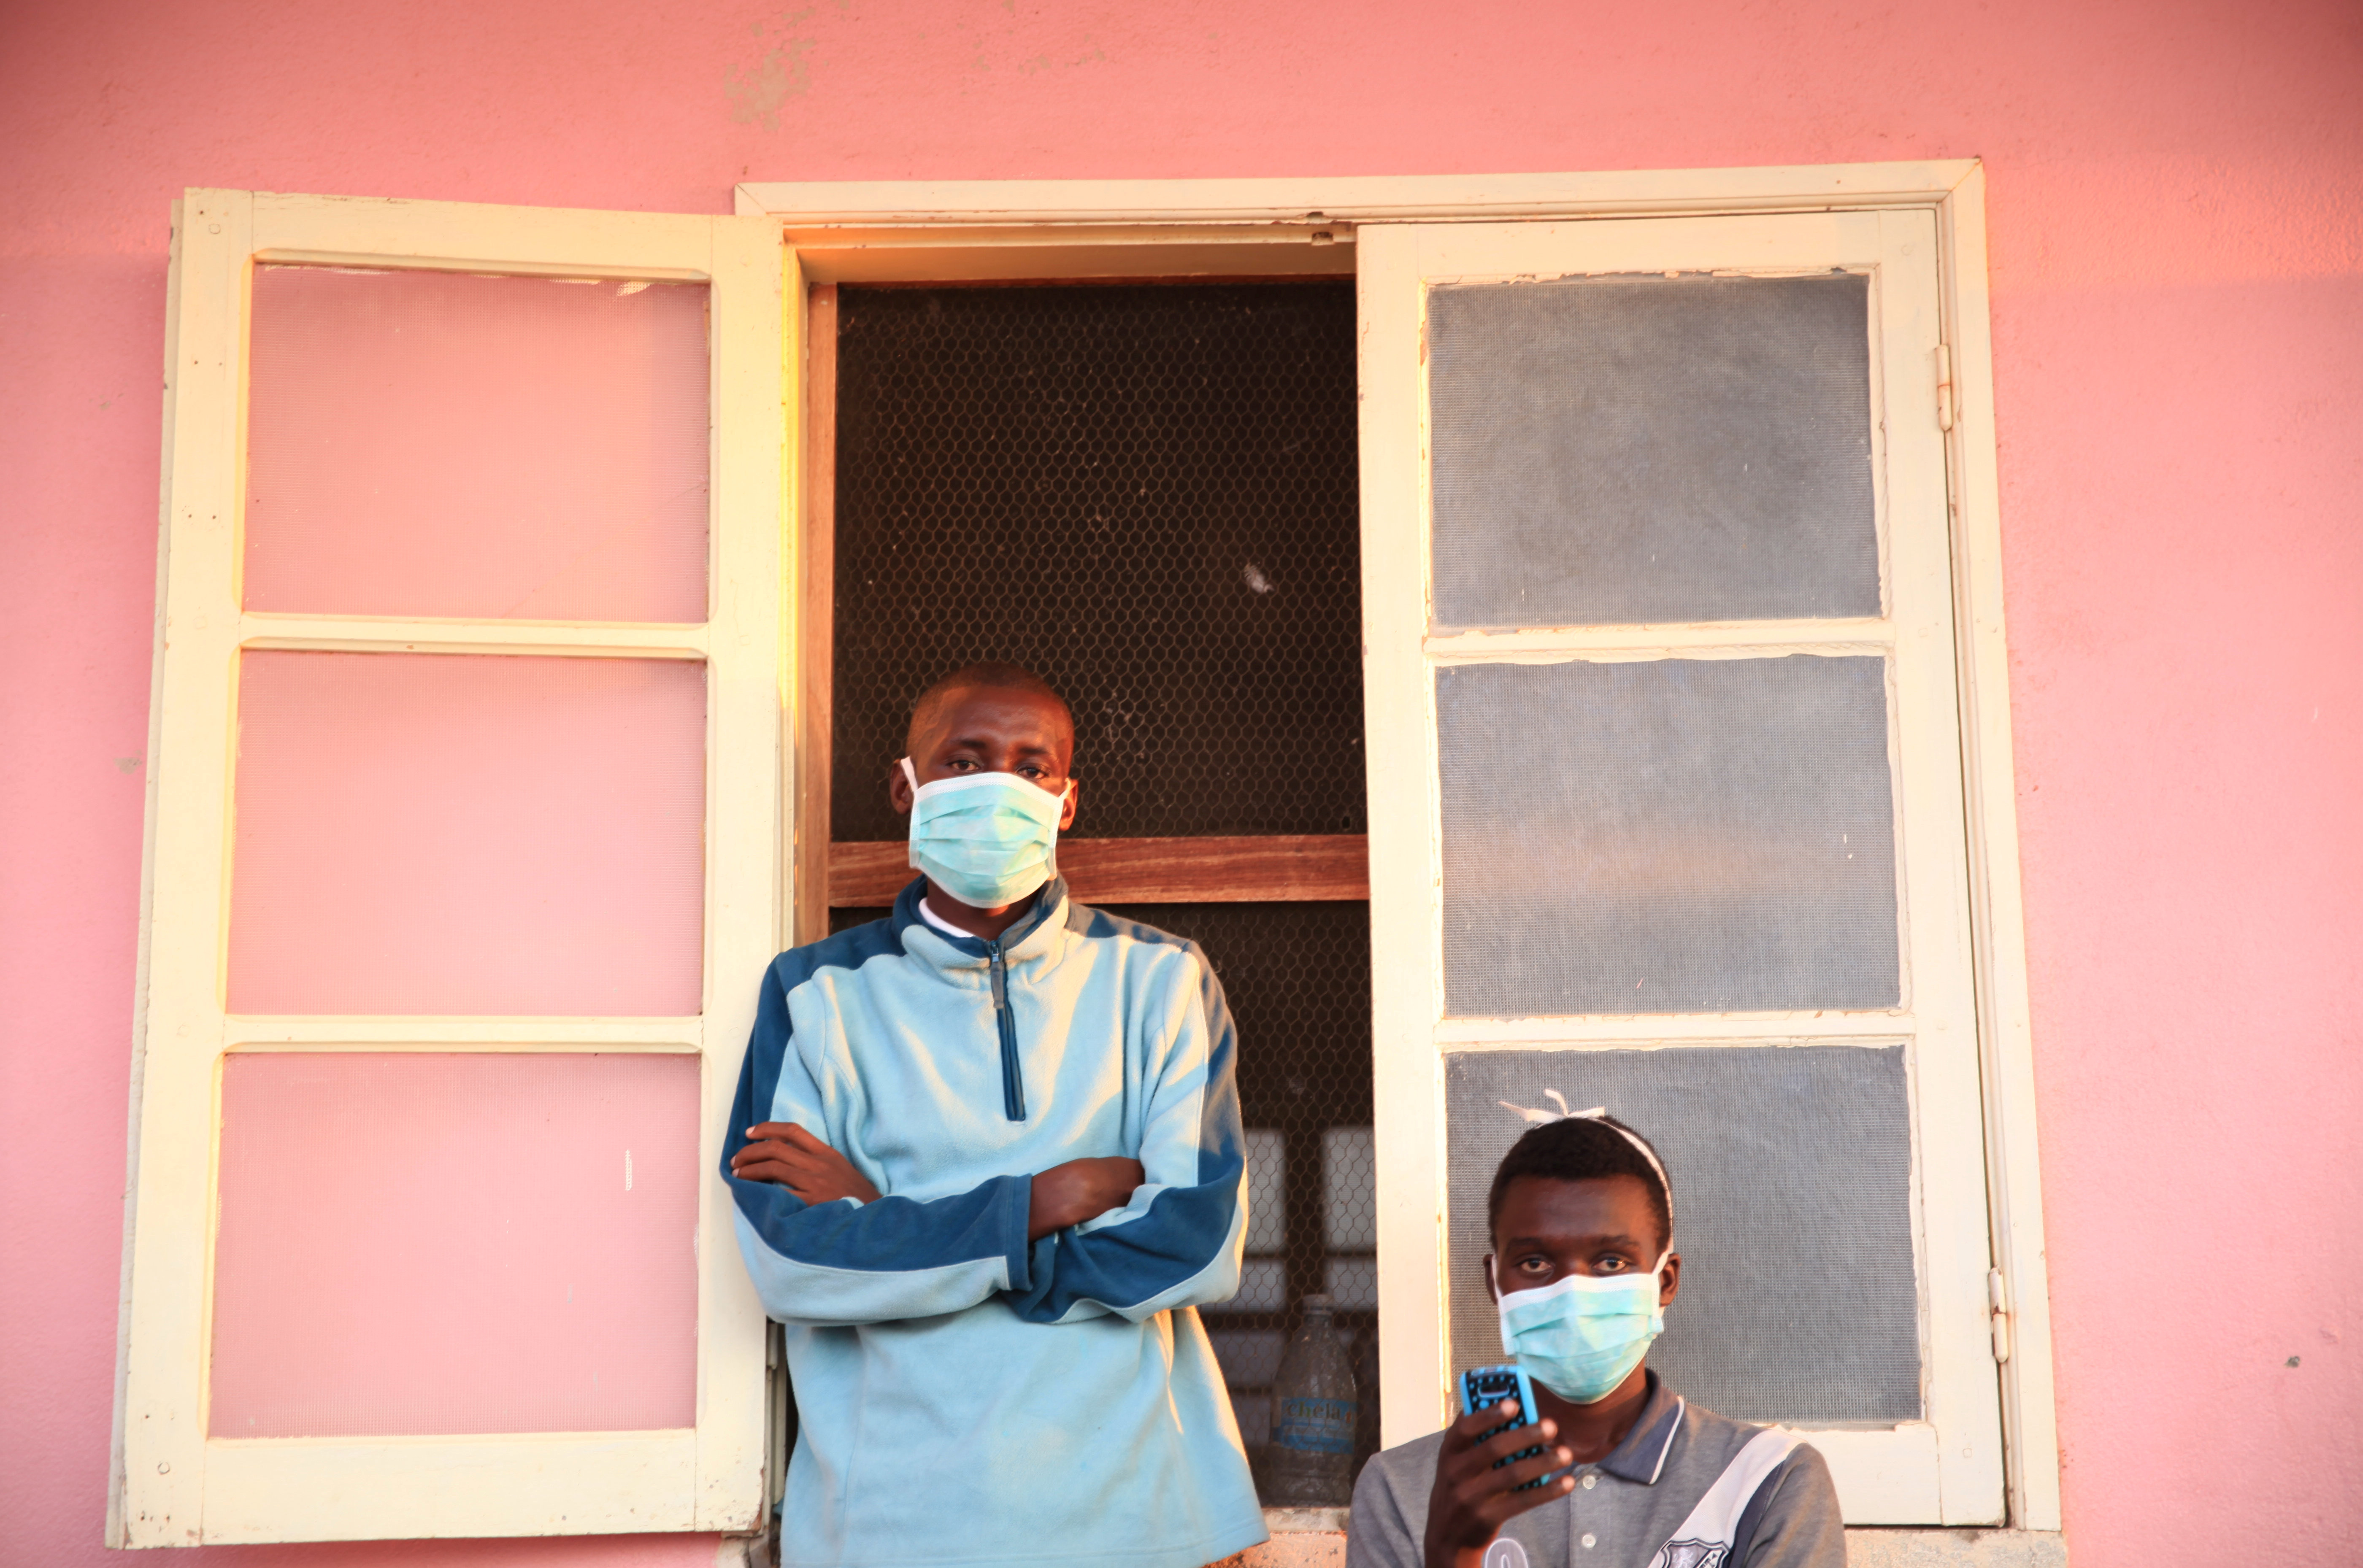 Tuberculosis patients, wearing masks to stop the spread of the disease, stand outside their ward at Chiulo Hospital, Cunene province, Angola, Feb. 22, 2018.